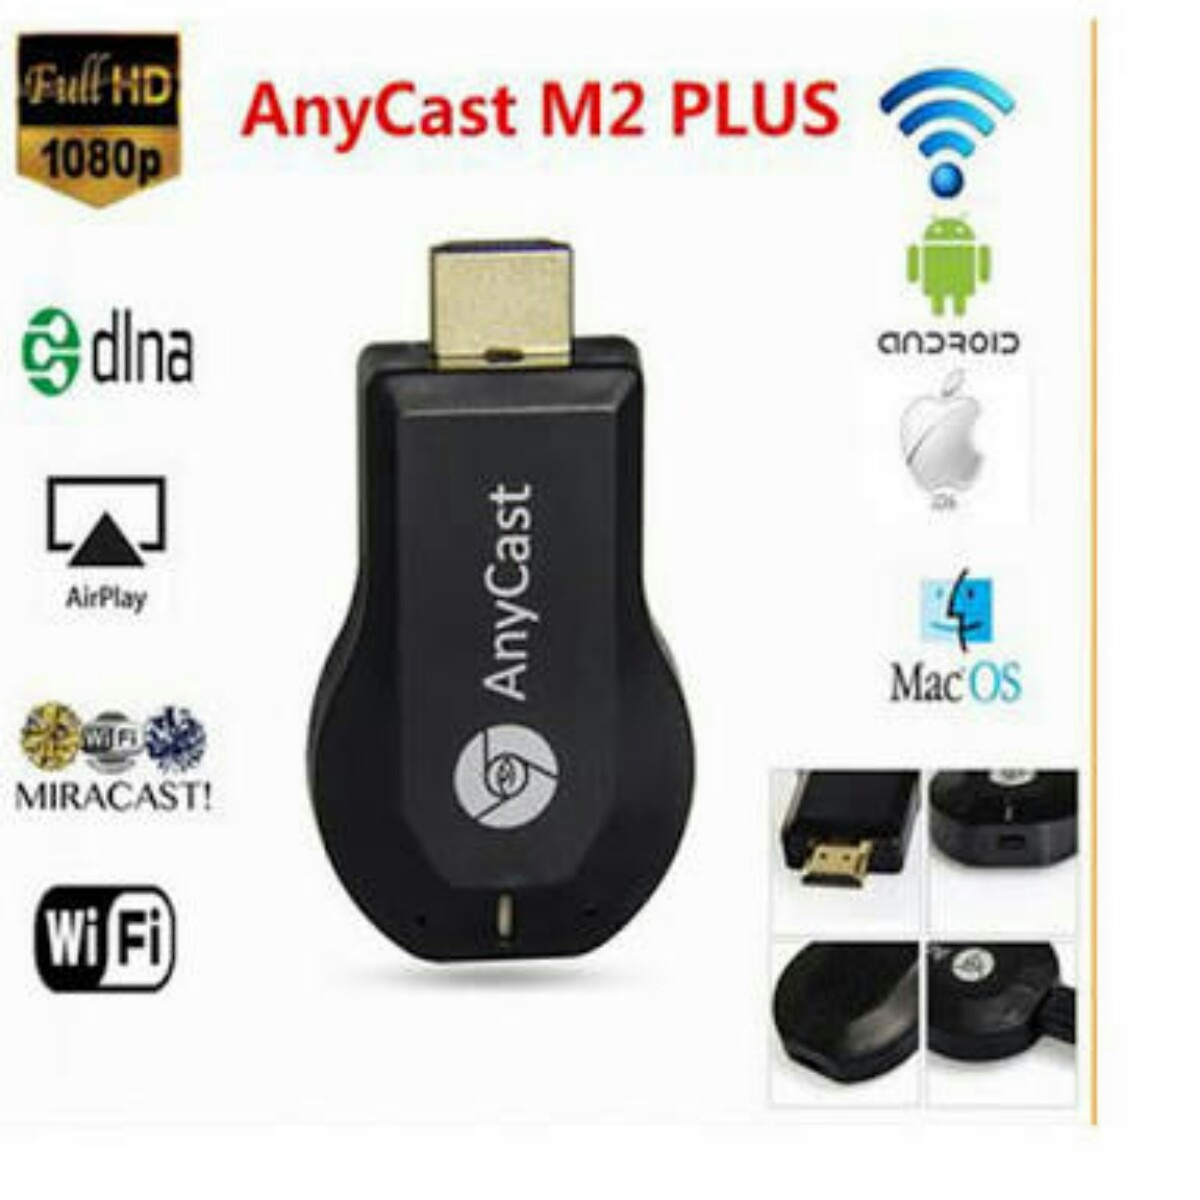 Chrome Cast Google Chrome 1080p Full Hd Hdmi Netflix